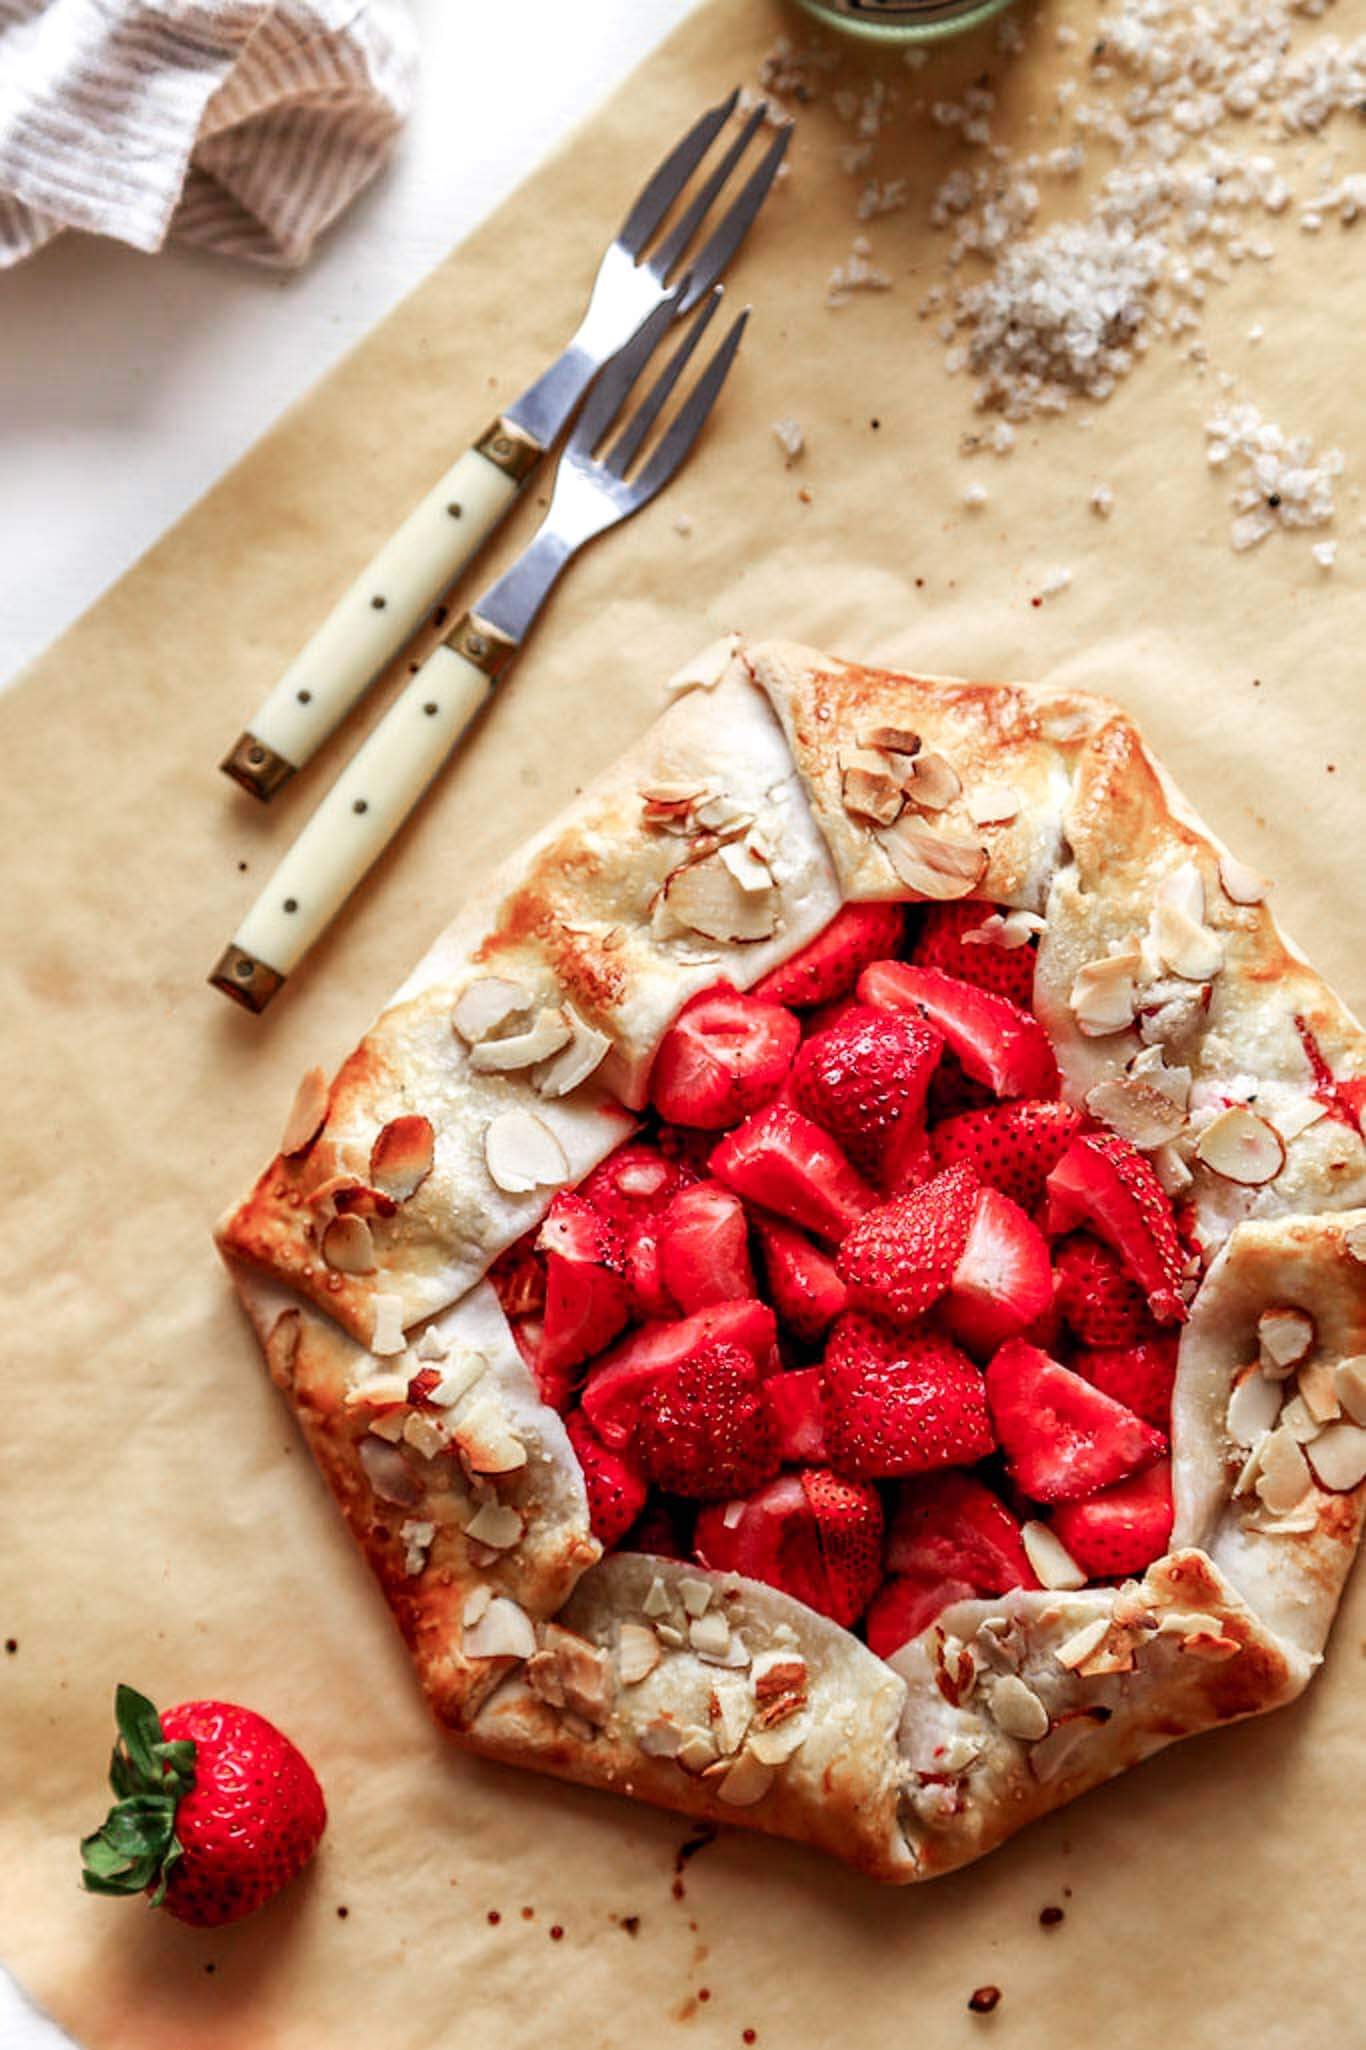 This rustic Strawberry Galette is a quick and easy dessert recipe that can be assembled in just 10 minutes using store-bought, refrigerated pie crust. | platingsandpairings.com